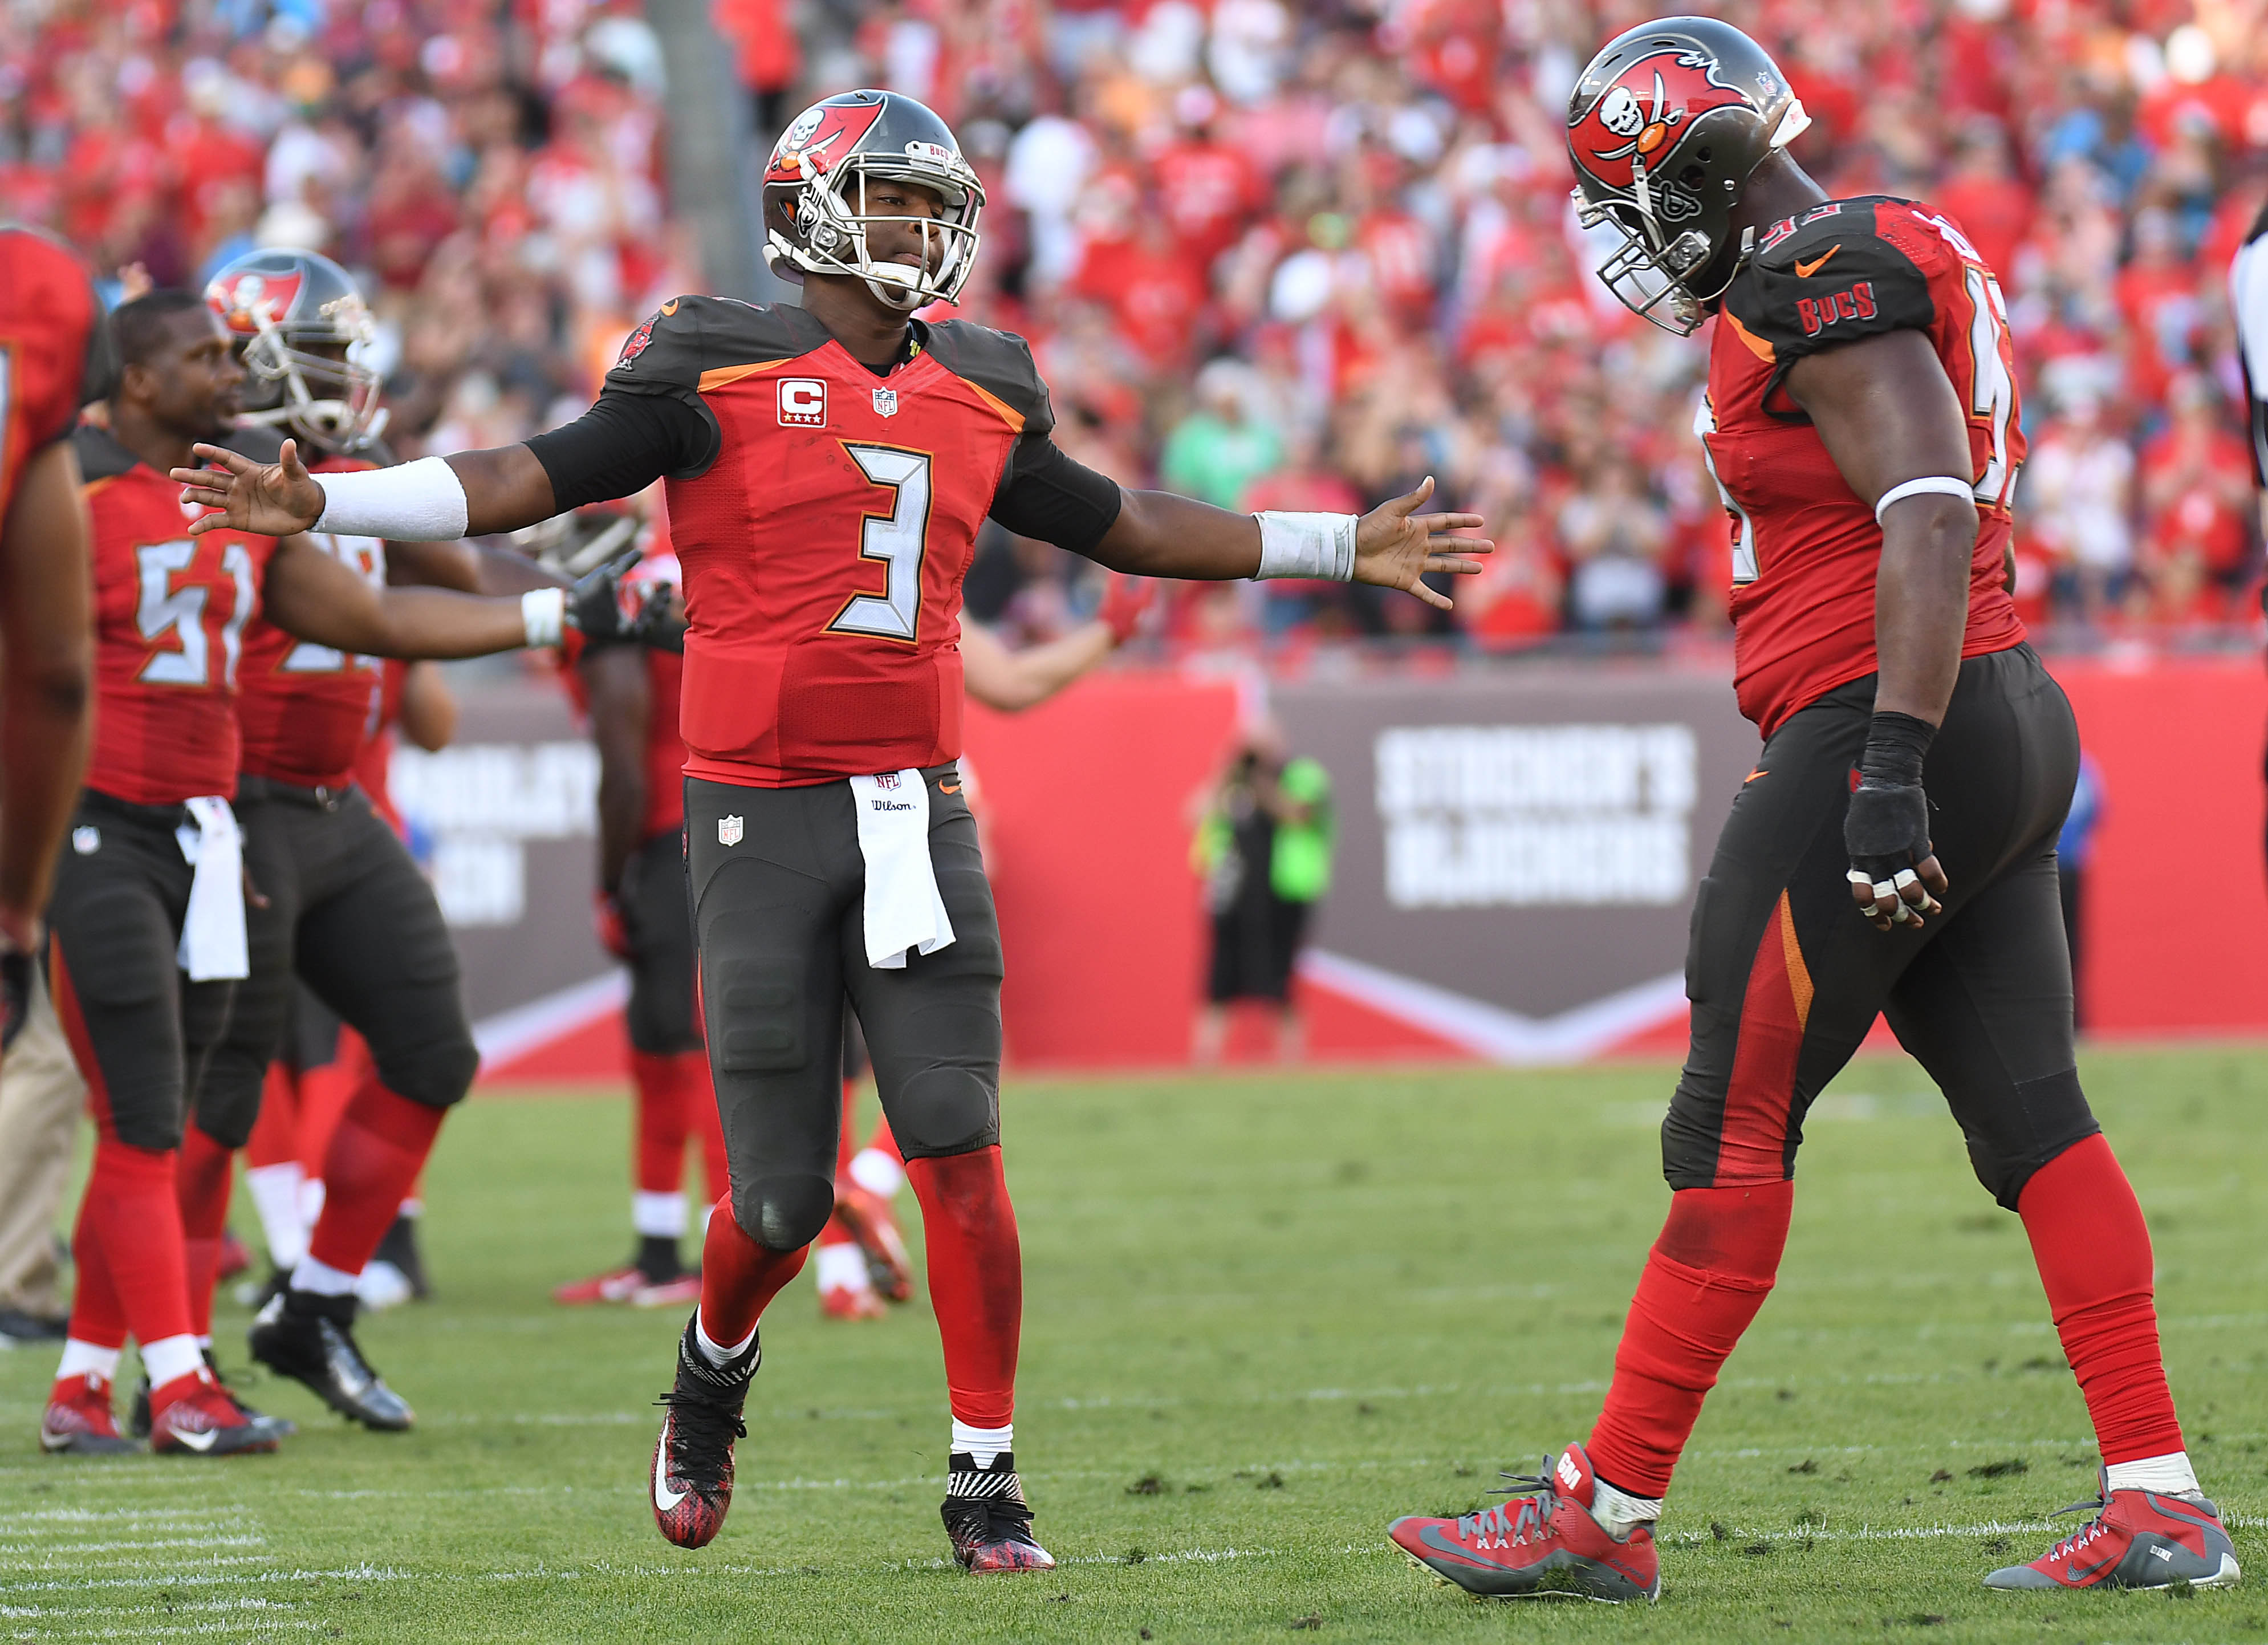 9782137-nfl-carolina-panthers-at-tampa-bay-buccaneers